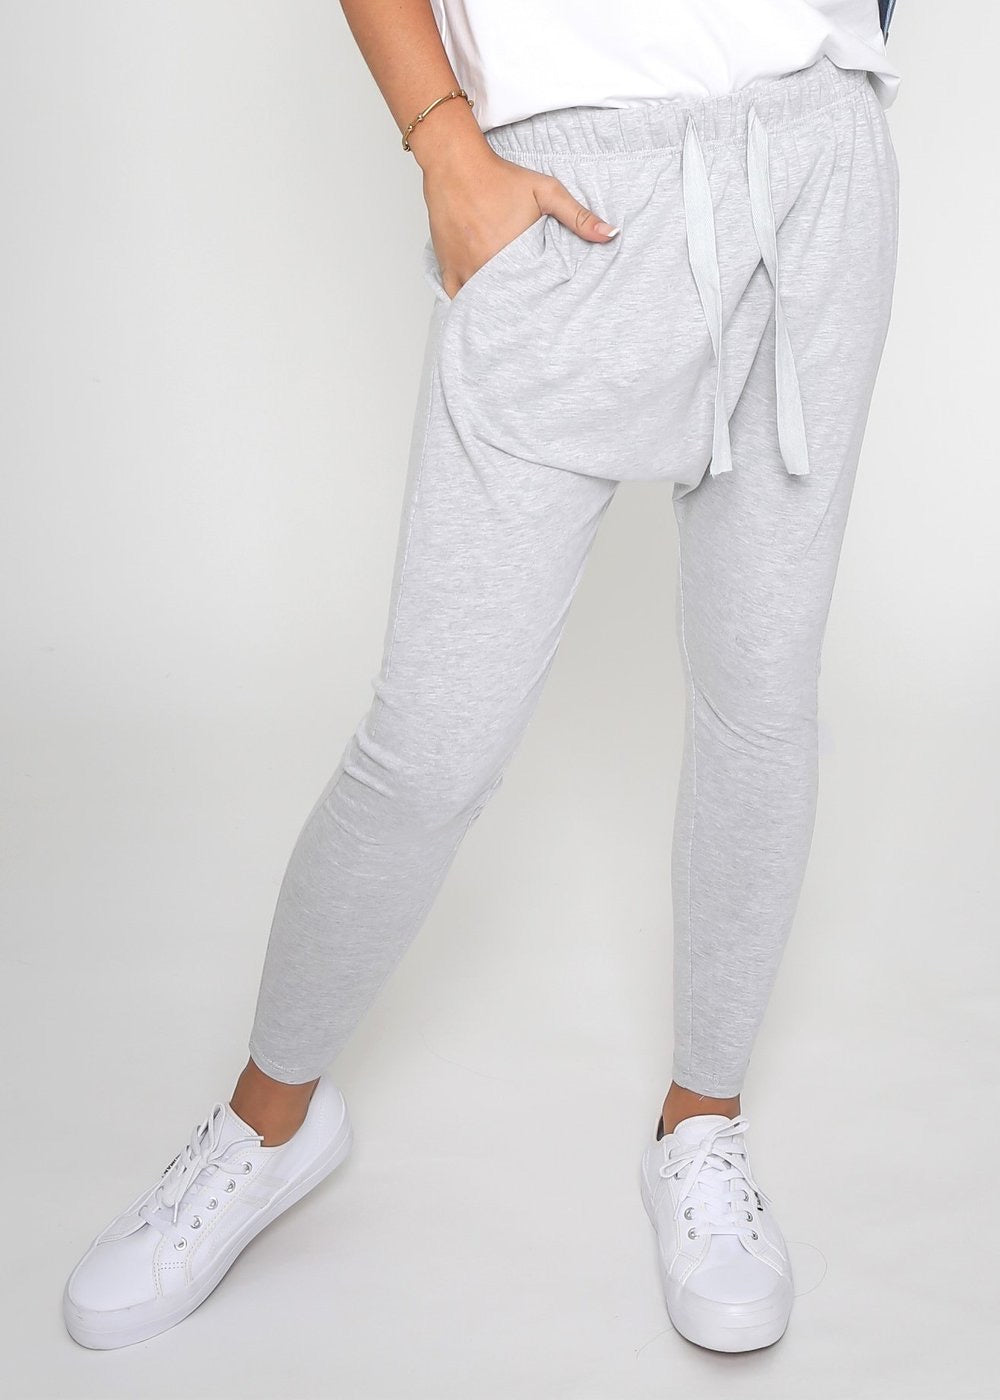 Lainie Lounge Pants Lainie Drop Crotch Pants Grey Marle - Basic State